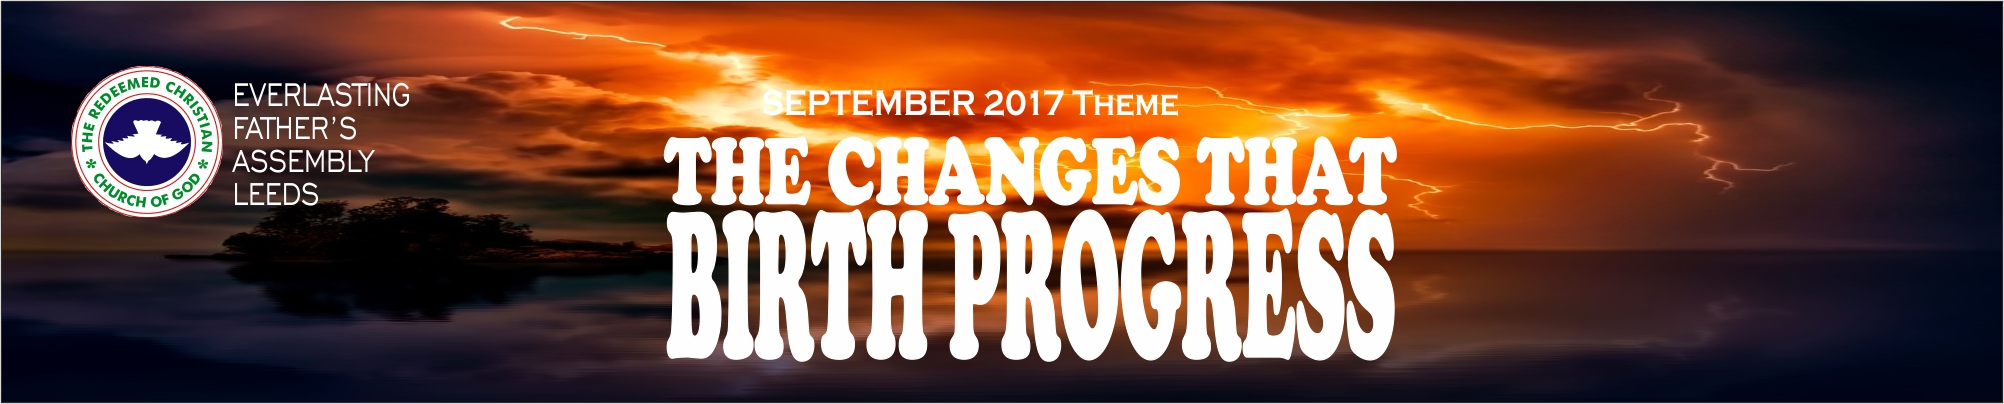 September 2017 Theme - The Changes That Birth Progress